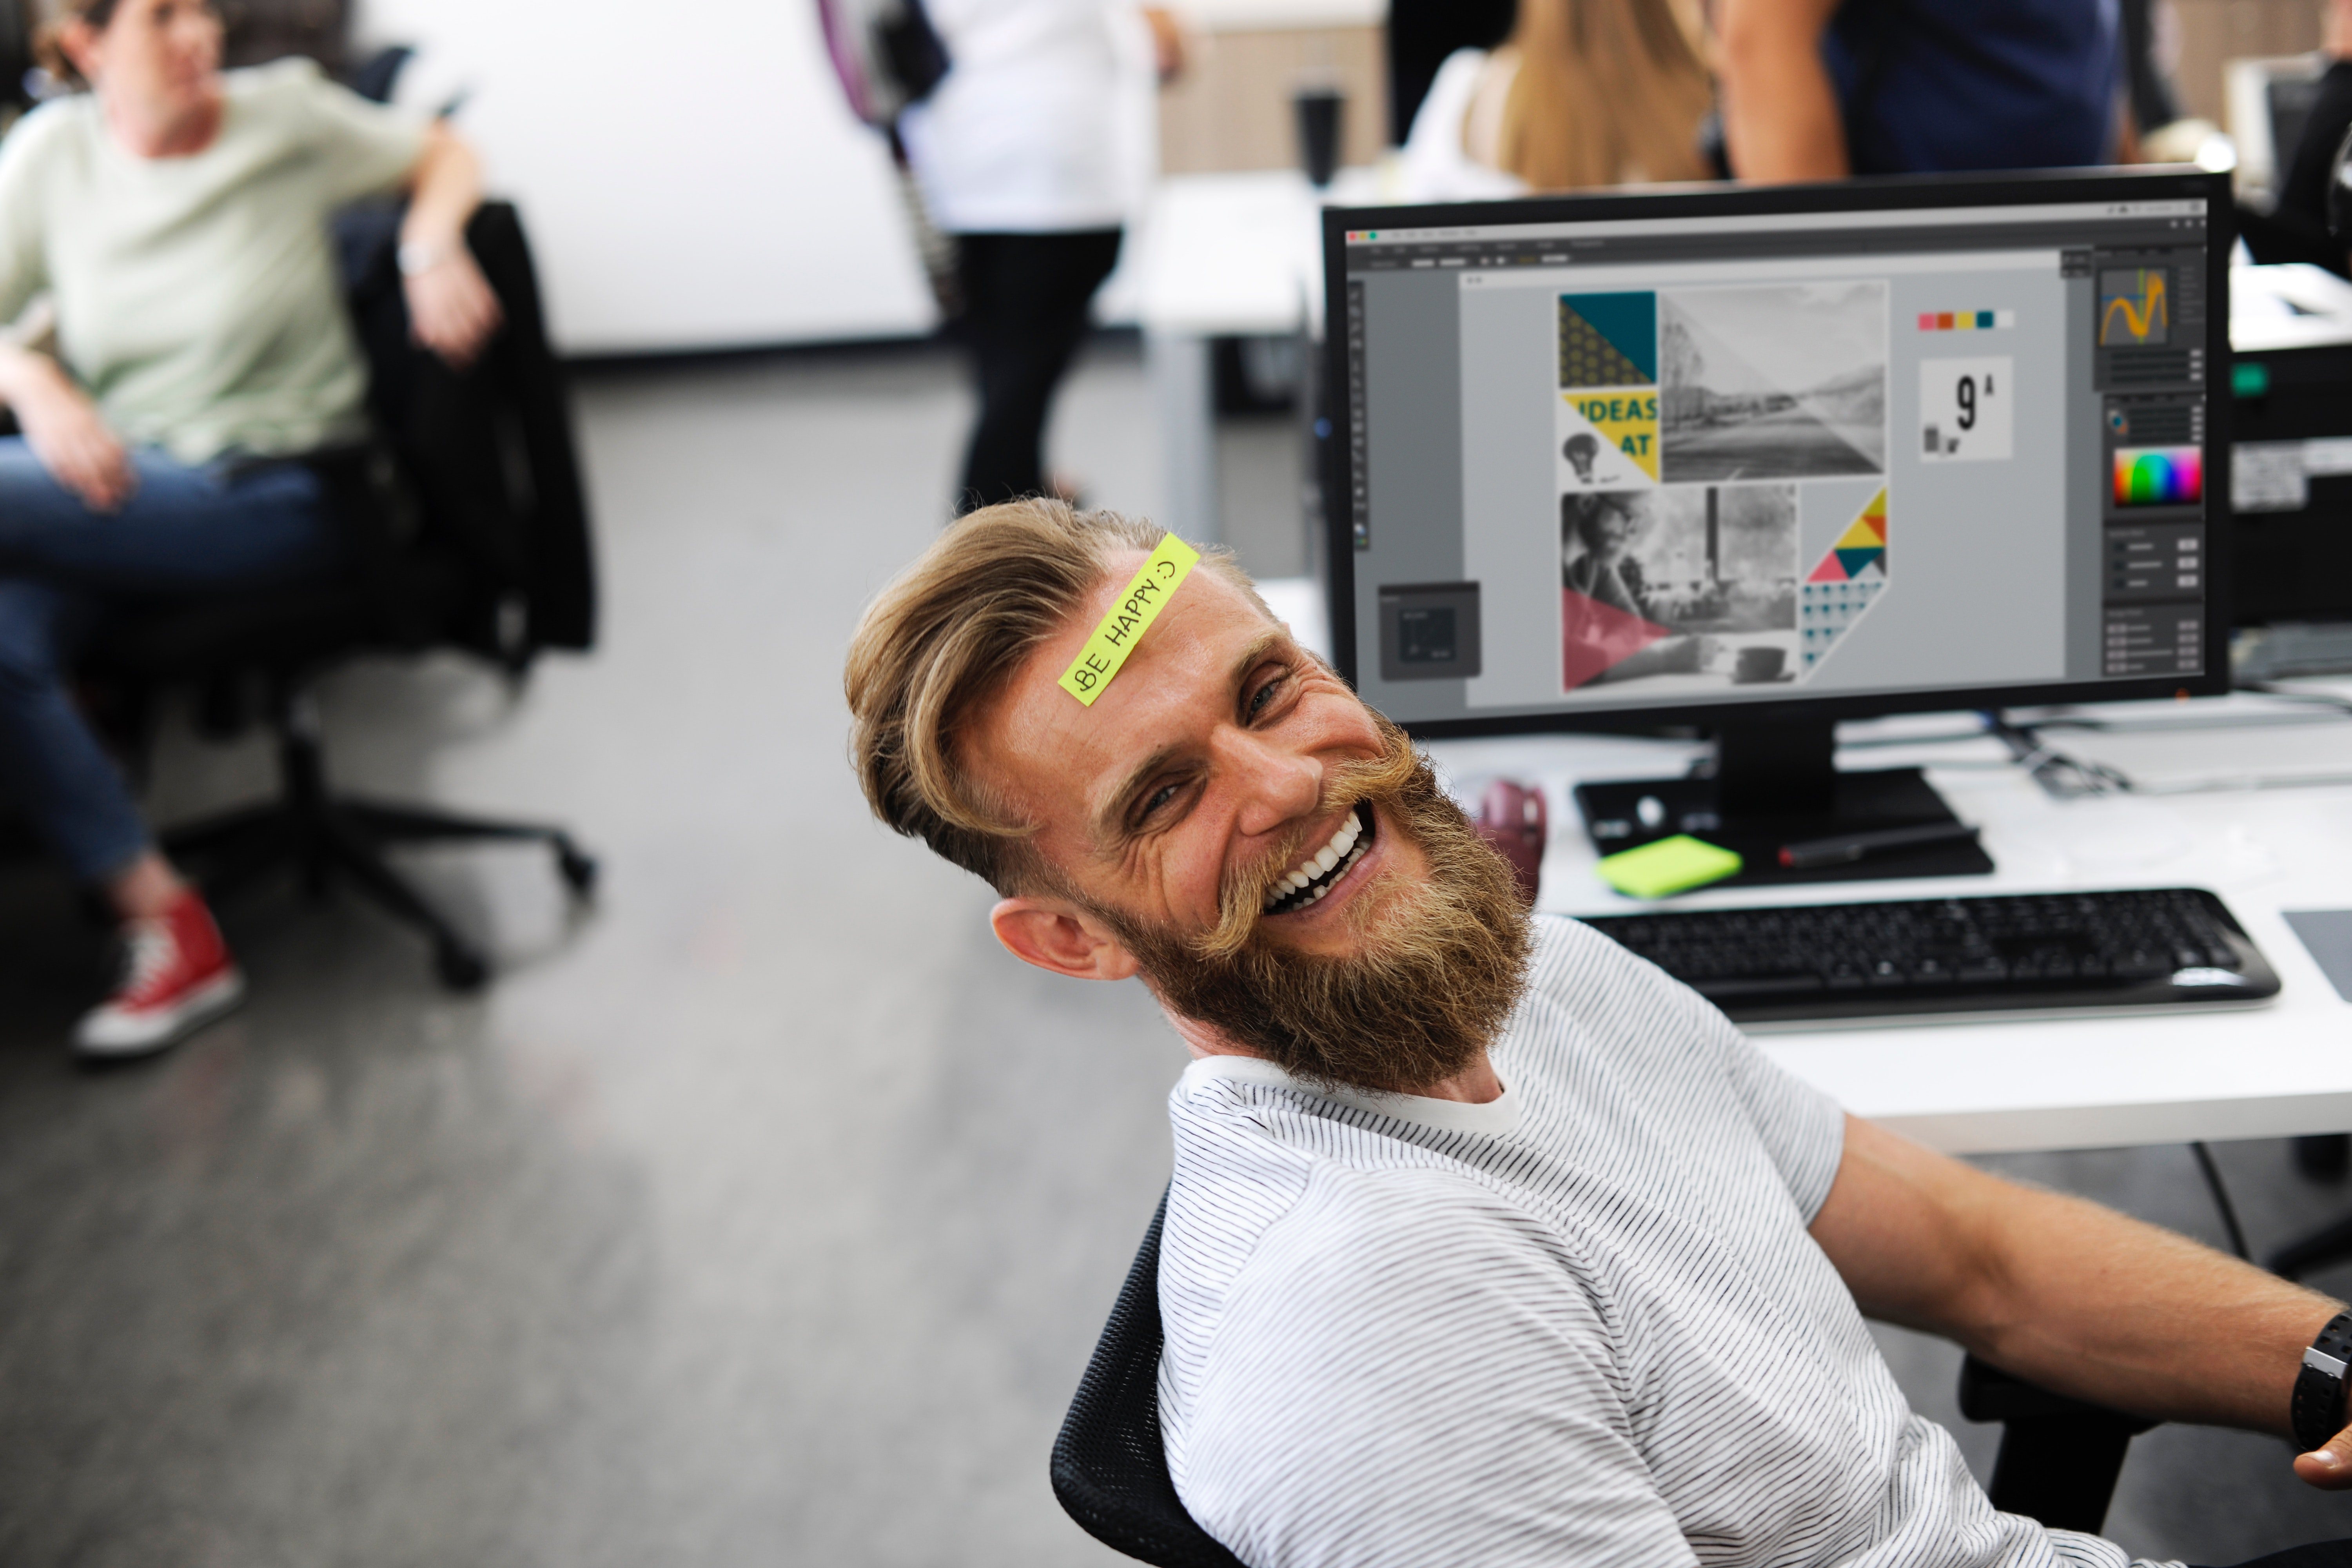 man is happy at work